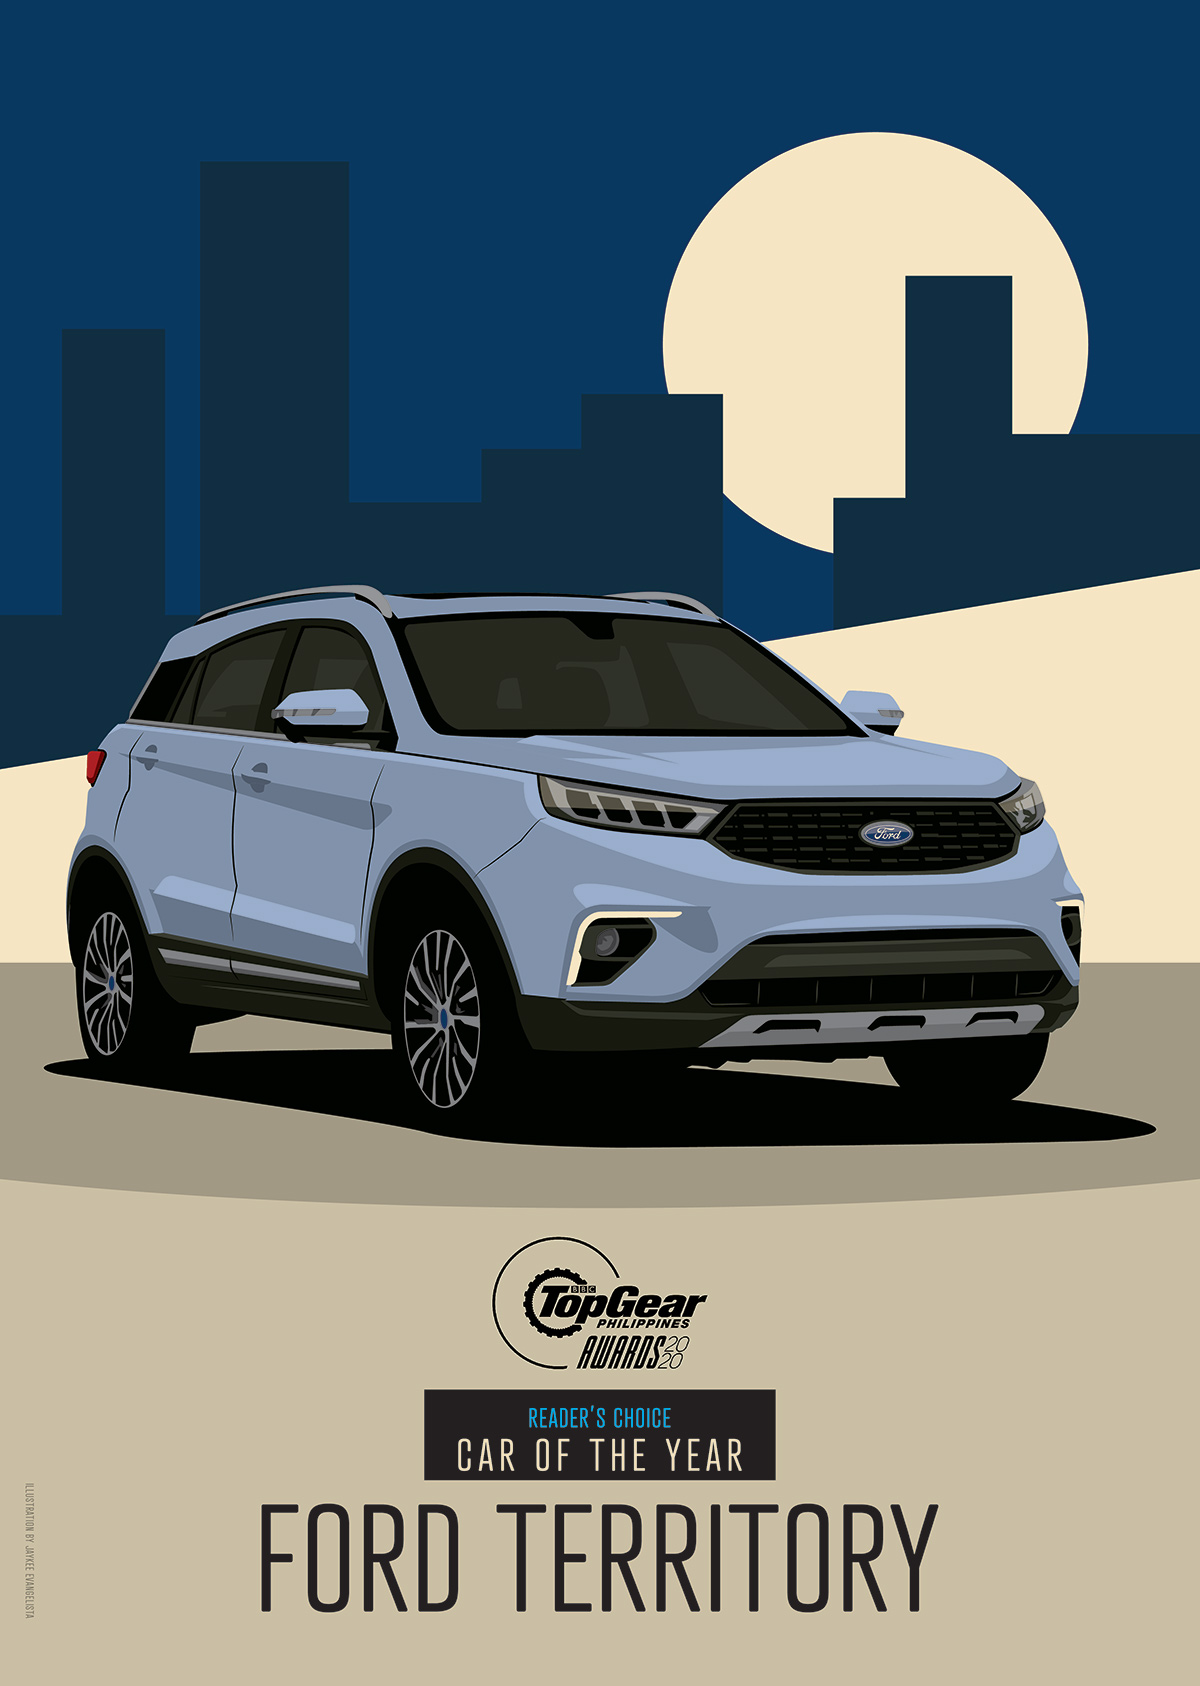 Top Gear Philippines' Reader's Choice: Car of the Year – Ford Territory